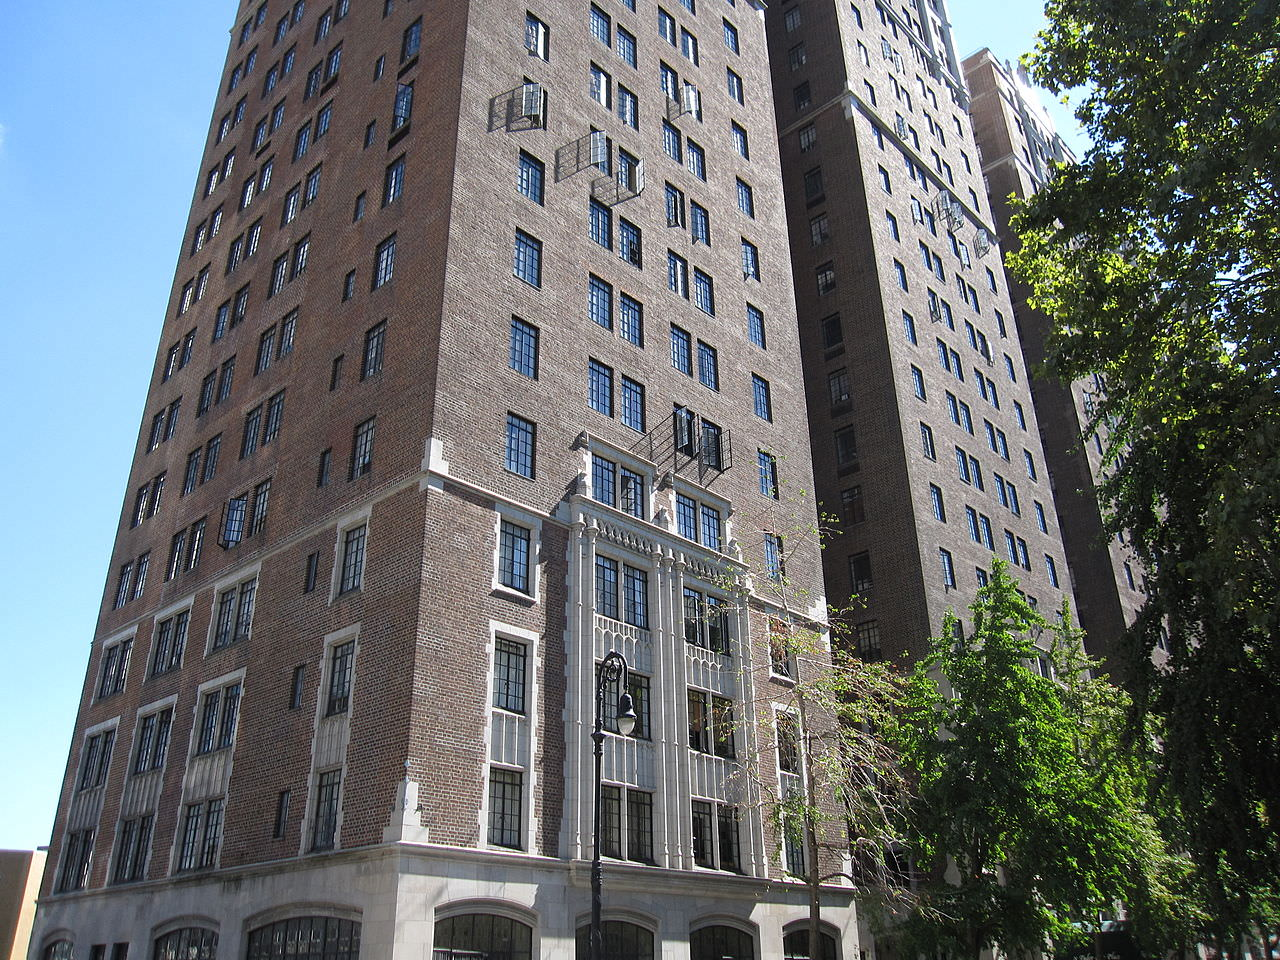 Tudor City to Open Up for a First-Ever One Day Tour